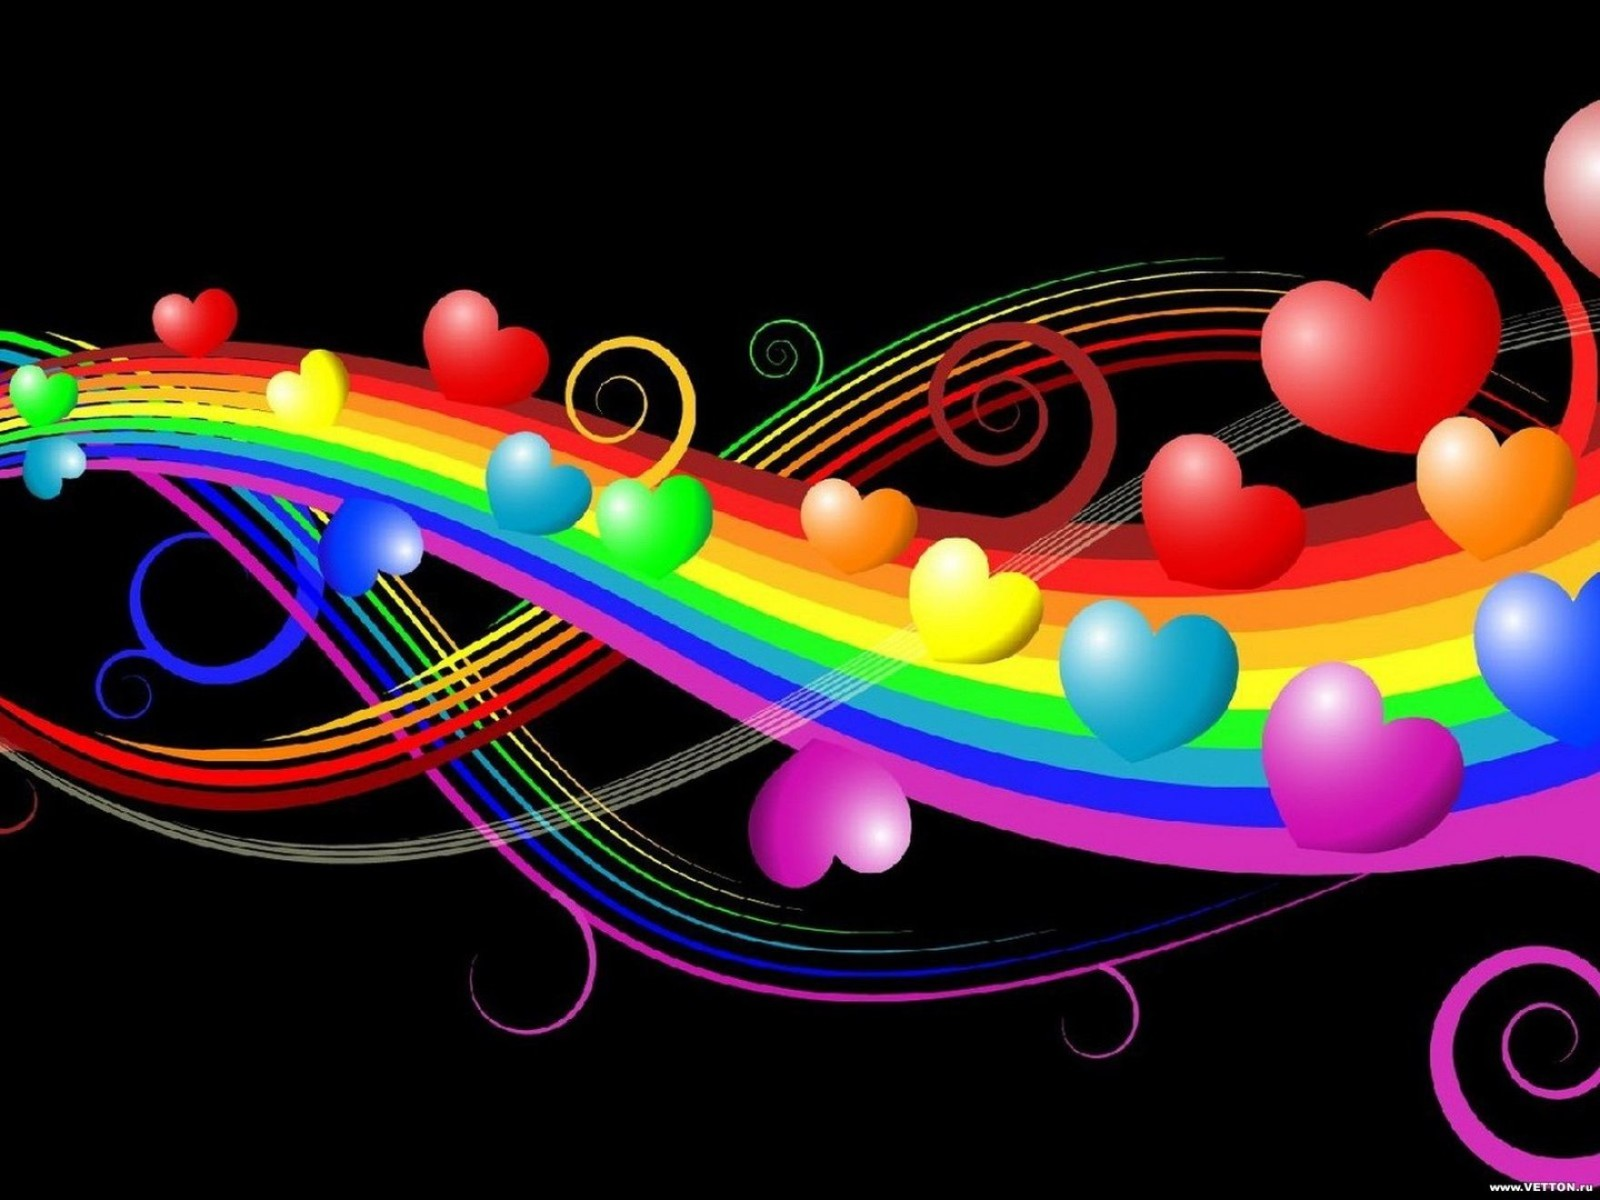 3D Colorful Background Wallpaper